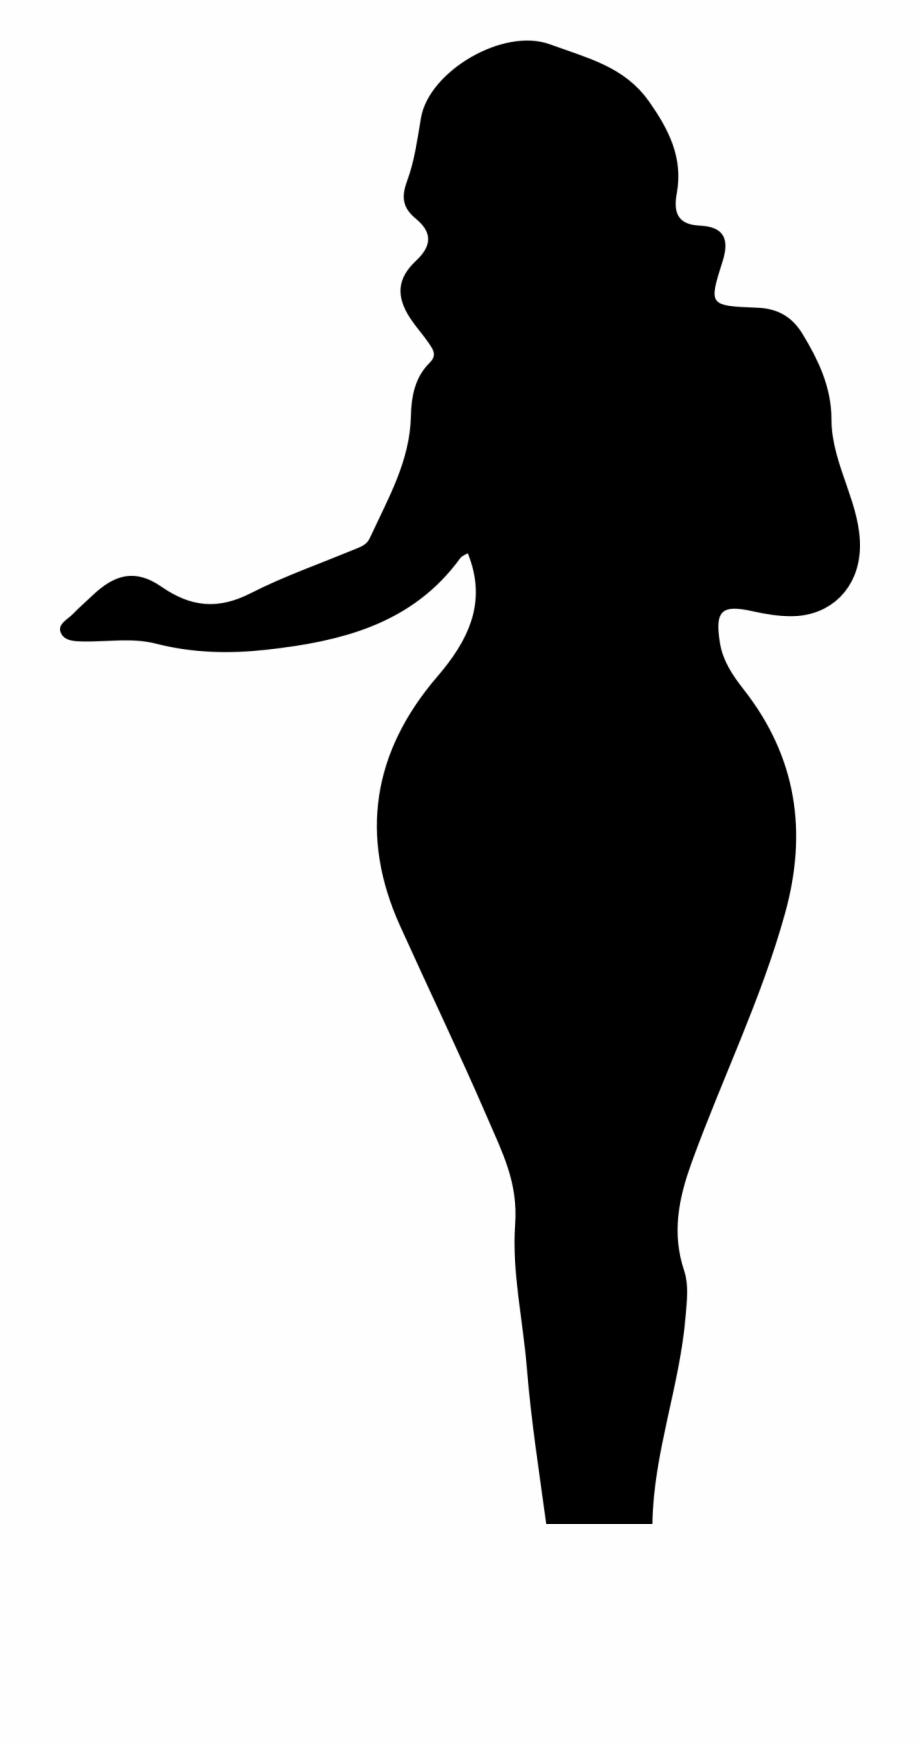 Woman silhouette images clipart png Clipart - Black Woman Silhouette Clipart Free PNG Images ... png